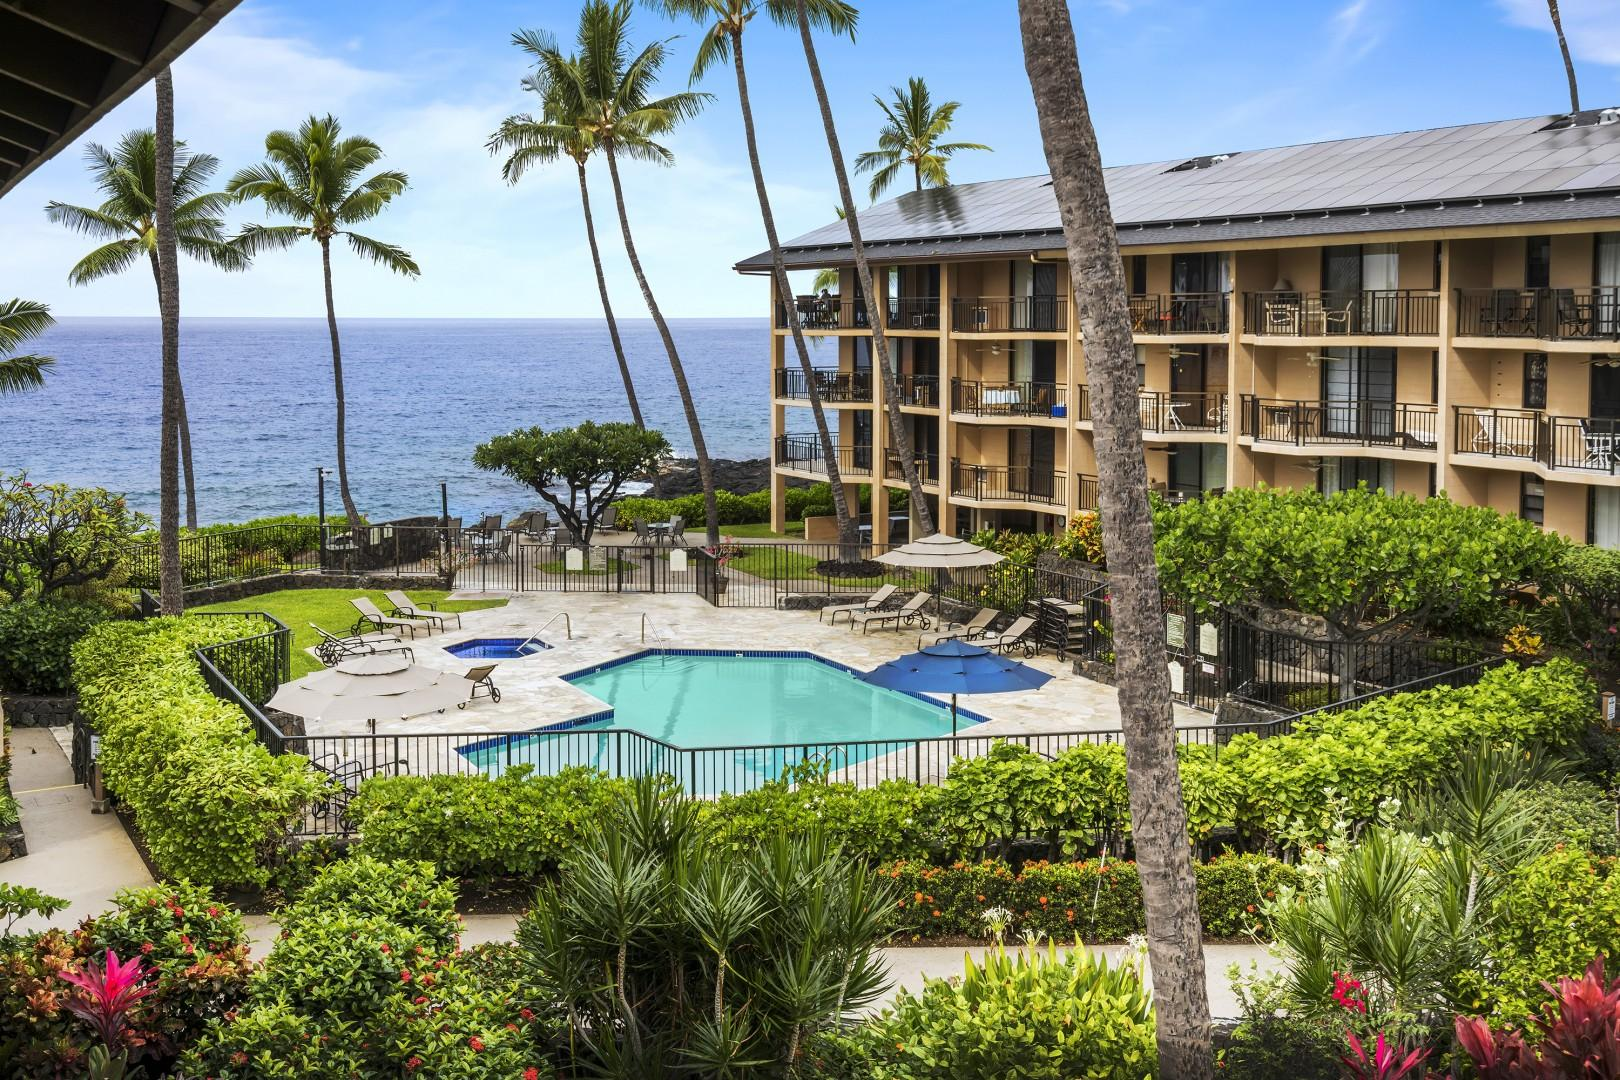 View overlooking the pool and spa from the Lanai at Kona Makai 2303